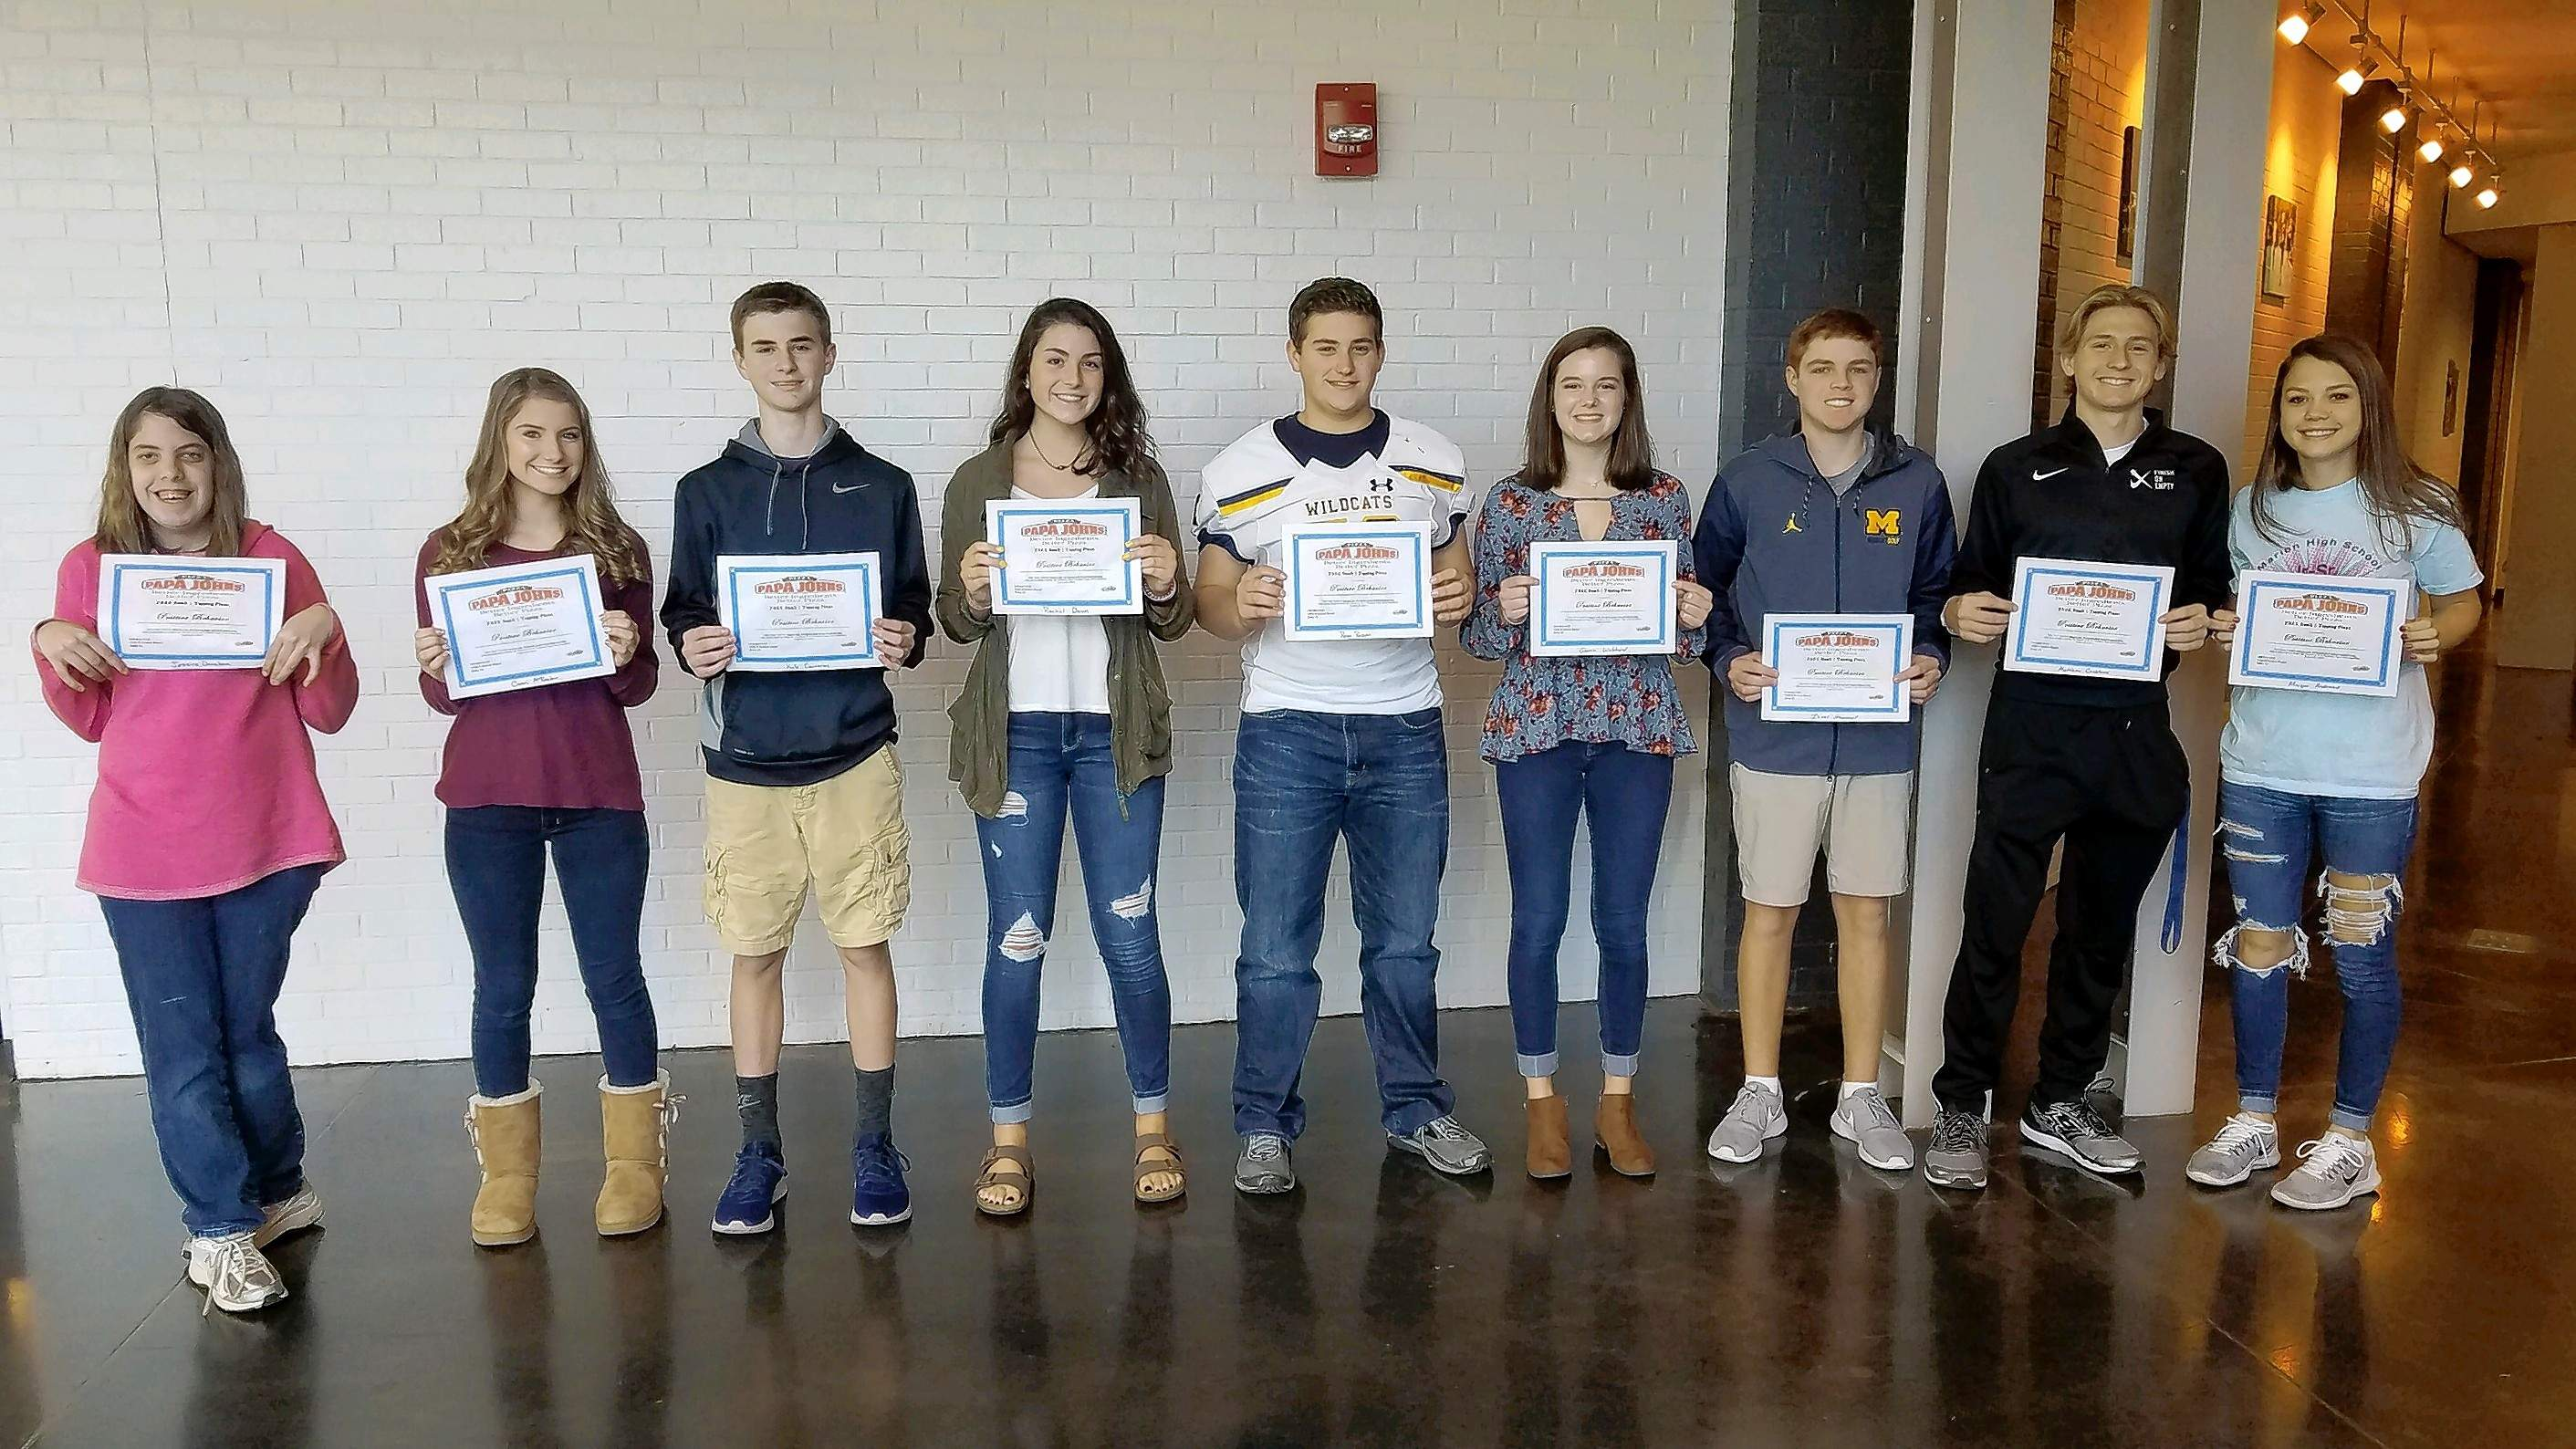 The following students were named Marion High School students of the month for September. From left: Strive: Jessica Donahue; freshman Camri McReaken and Kale Cameron; sophomores Rachel Daun and Rece Roper; juniors Gloria Wofford and Isaac Hammet; and seniors Matthew Crabtree and Morgan Andrews. Students were eligible for the award by having no absences and tardies during September. Teachers then voted for one boy and one girl in each class that demonstrated good character and served as a role model for others.